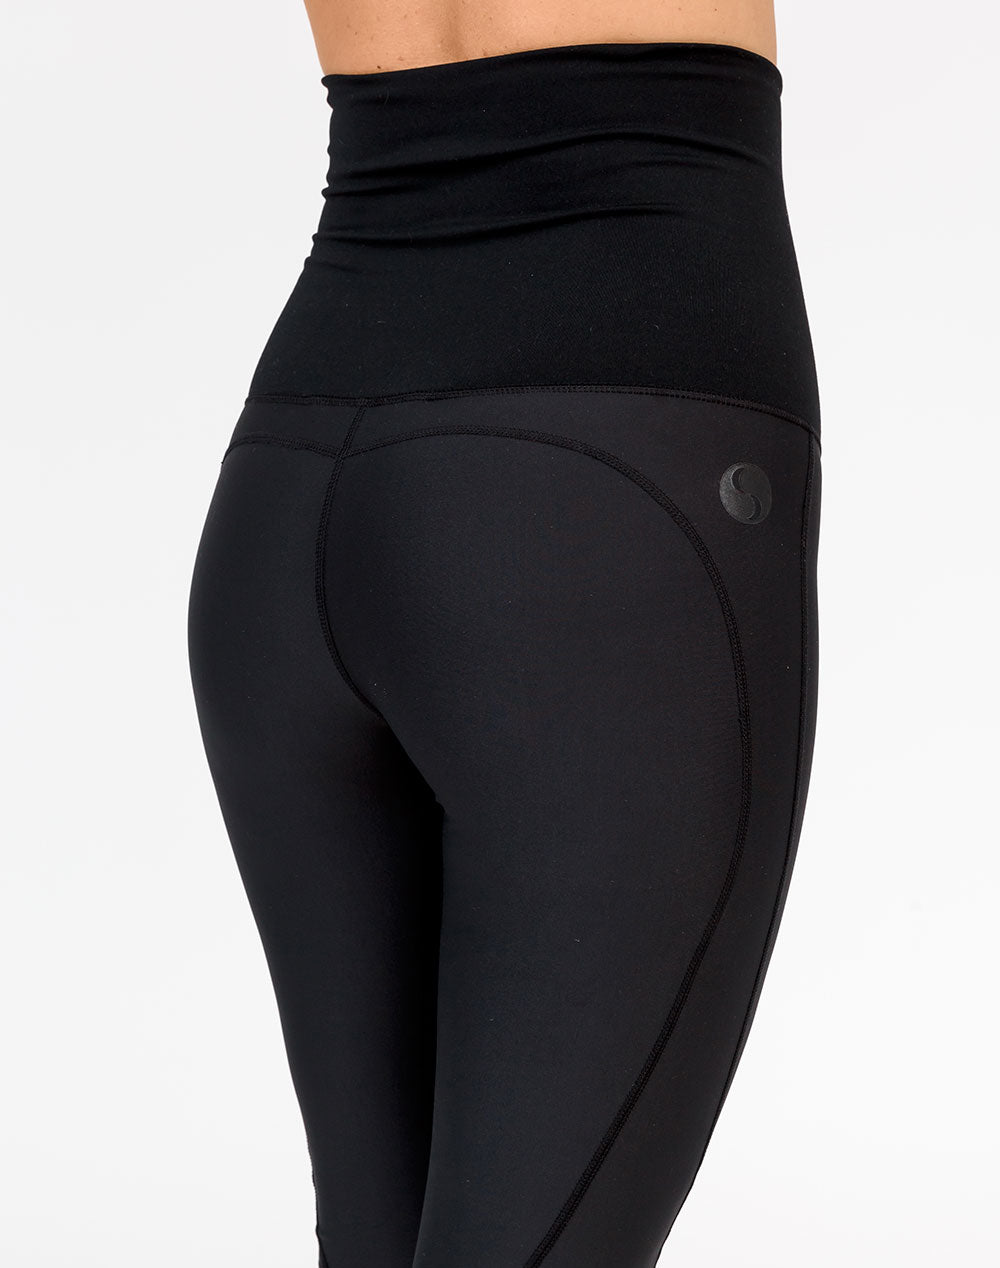 back view of a pregnant woman wearing black 3/4 maternity leggings